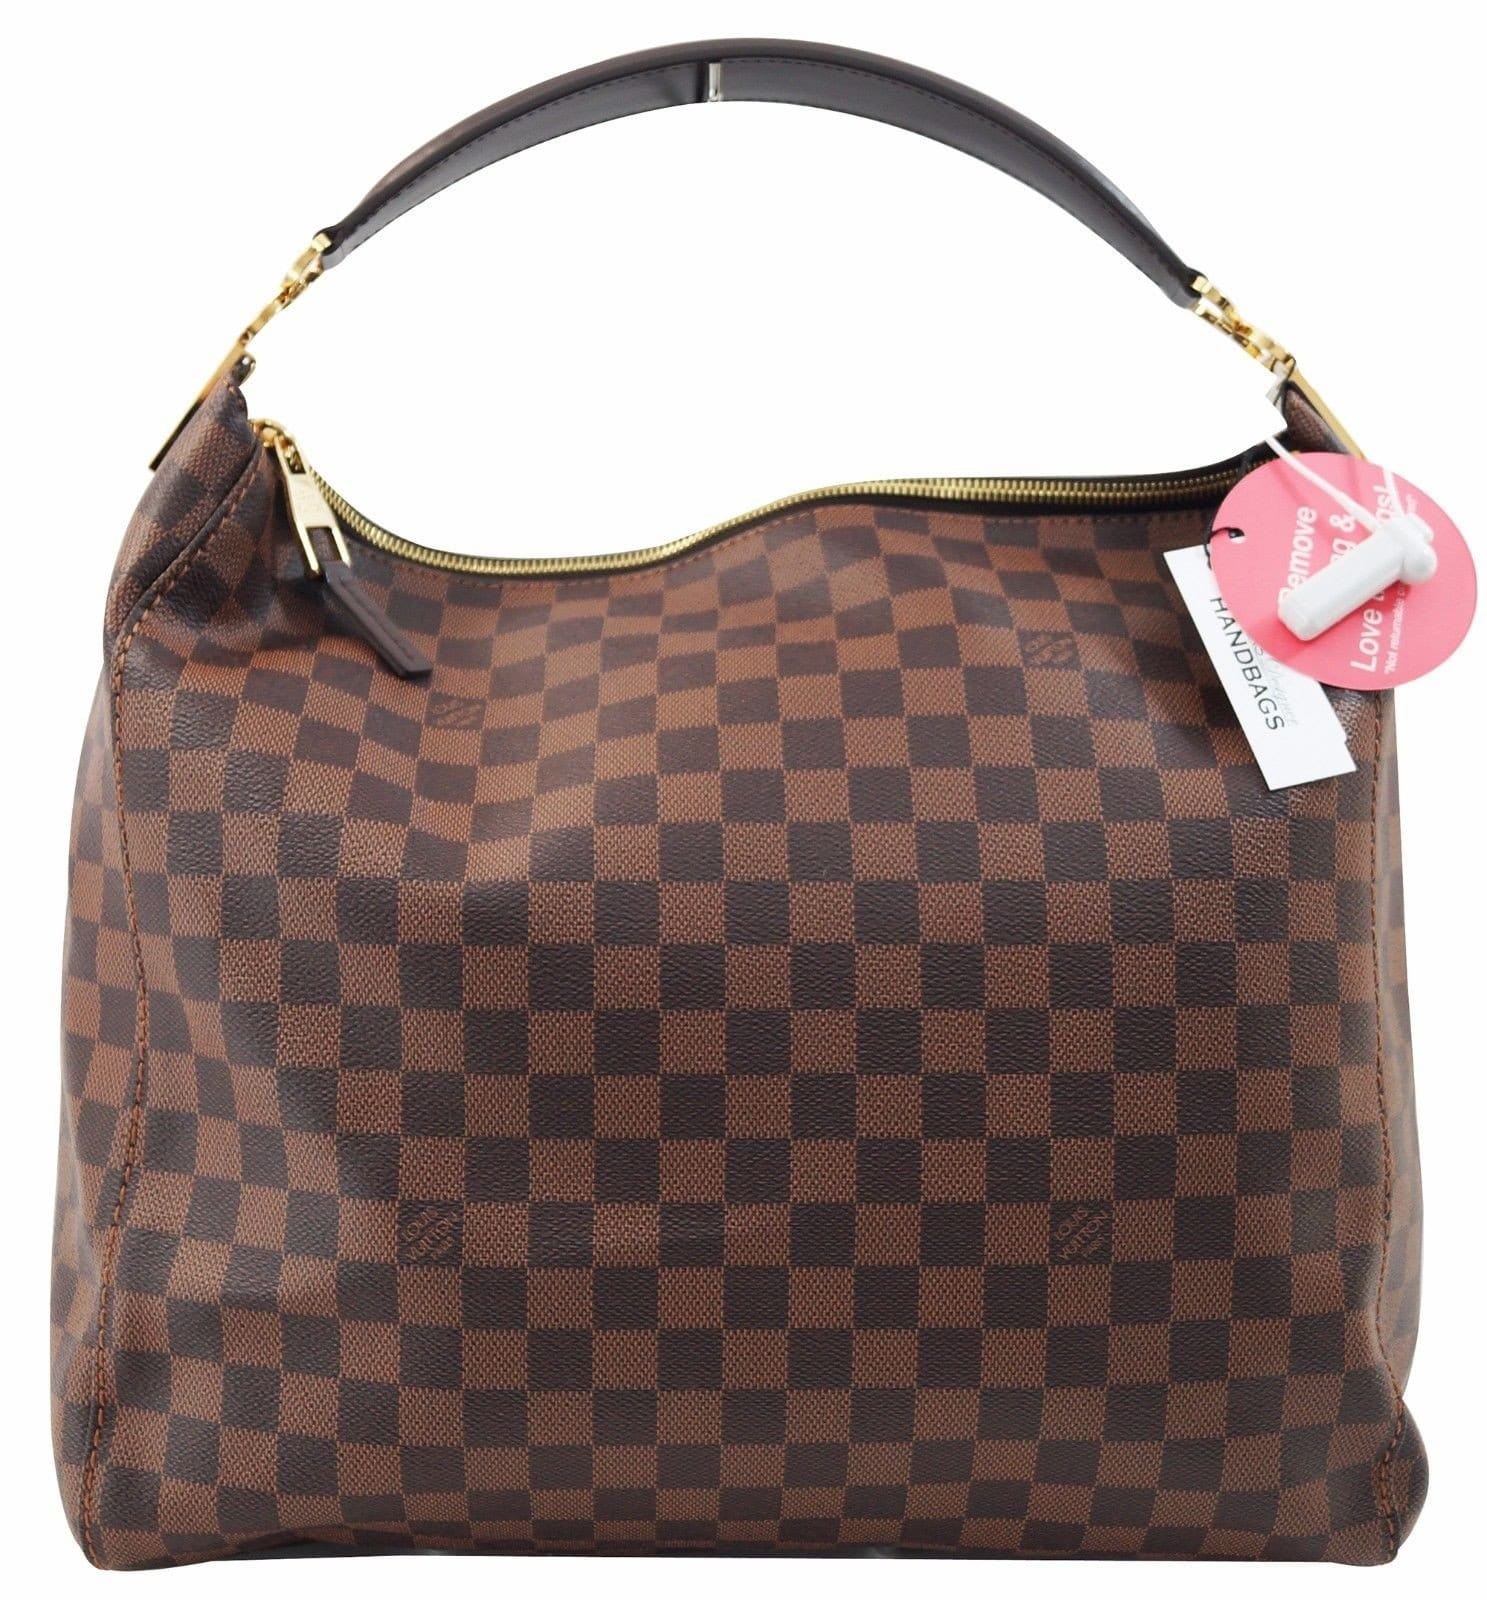 289db8acac62 Authentic Louis Vuitton Damier Ebene Portobello GM Shoulder HandBag E2